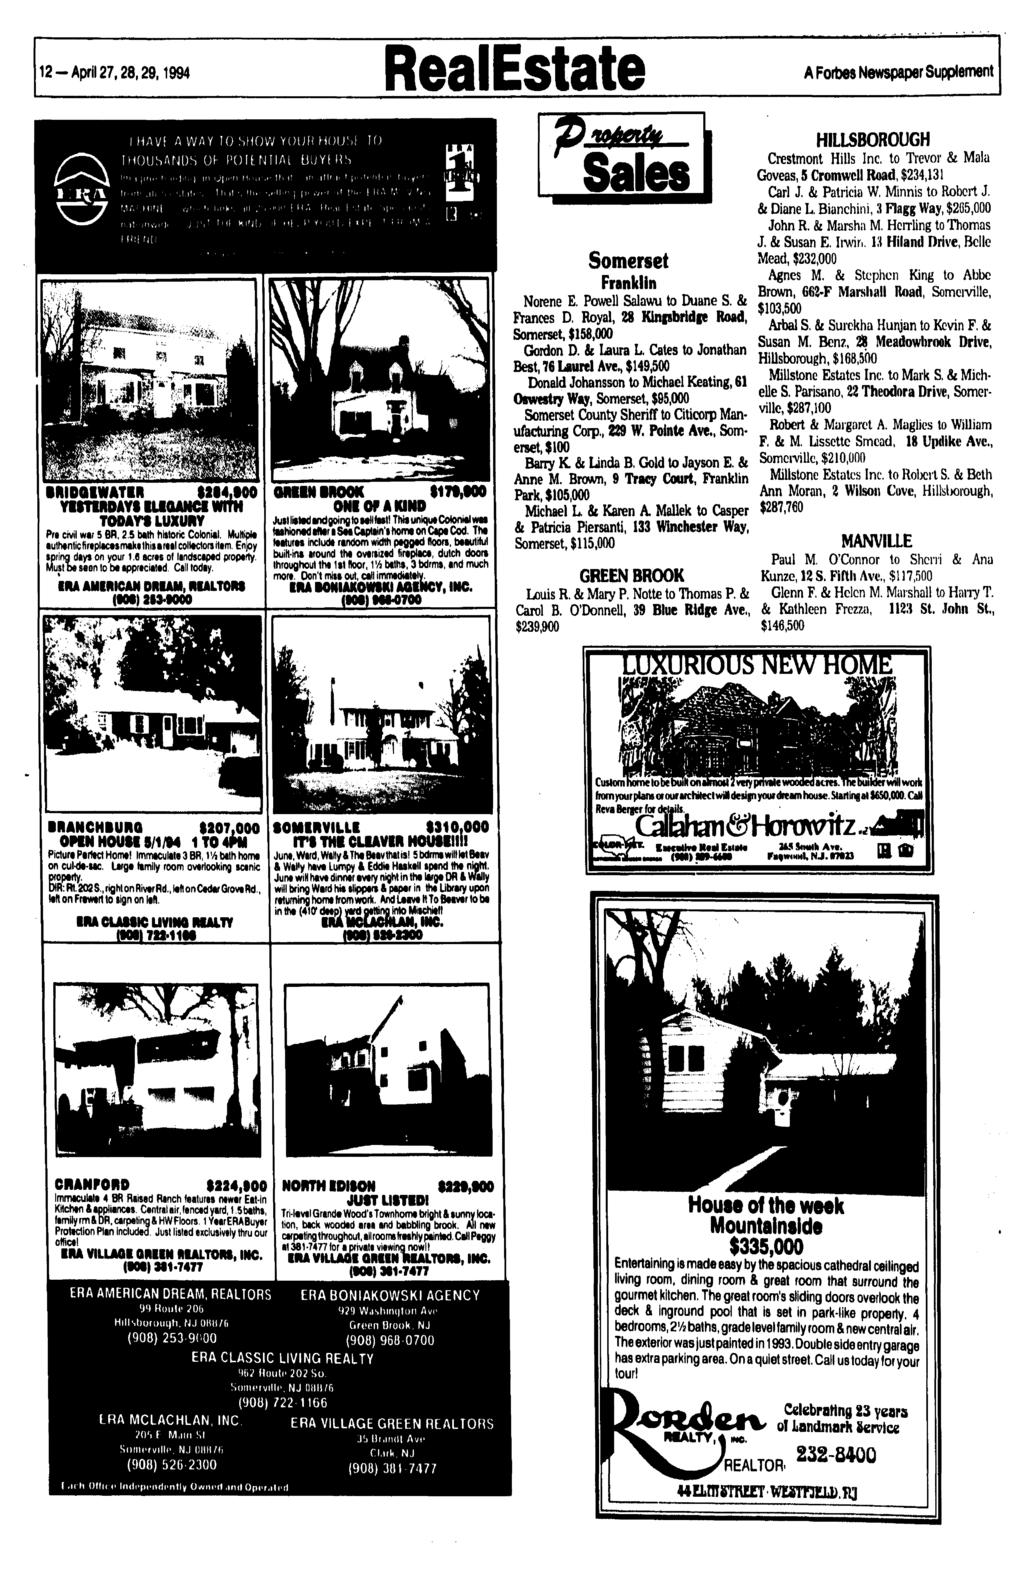 12 - April 27,28,29,1994 RealEstate A Forbes Newspaper Supplement I HAVi A WAY 10 SHOW YOUR HOUSi TO HOUSANDS Of- POft NTIAL UUYf US Ml KINEJ midqiwatir WKI00 YISTMDAYS ILIQAMCI WITH TODAYS LUXURY